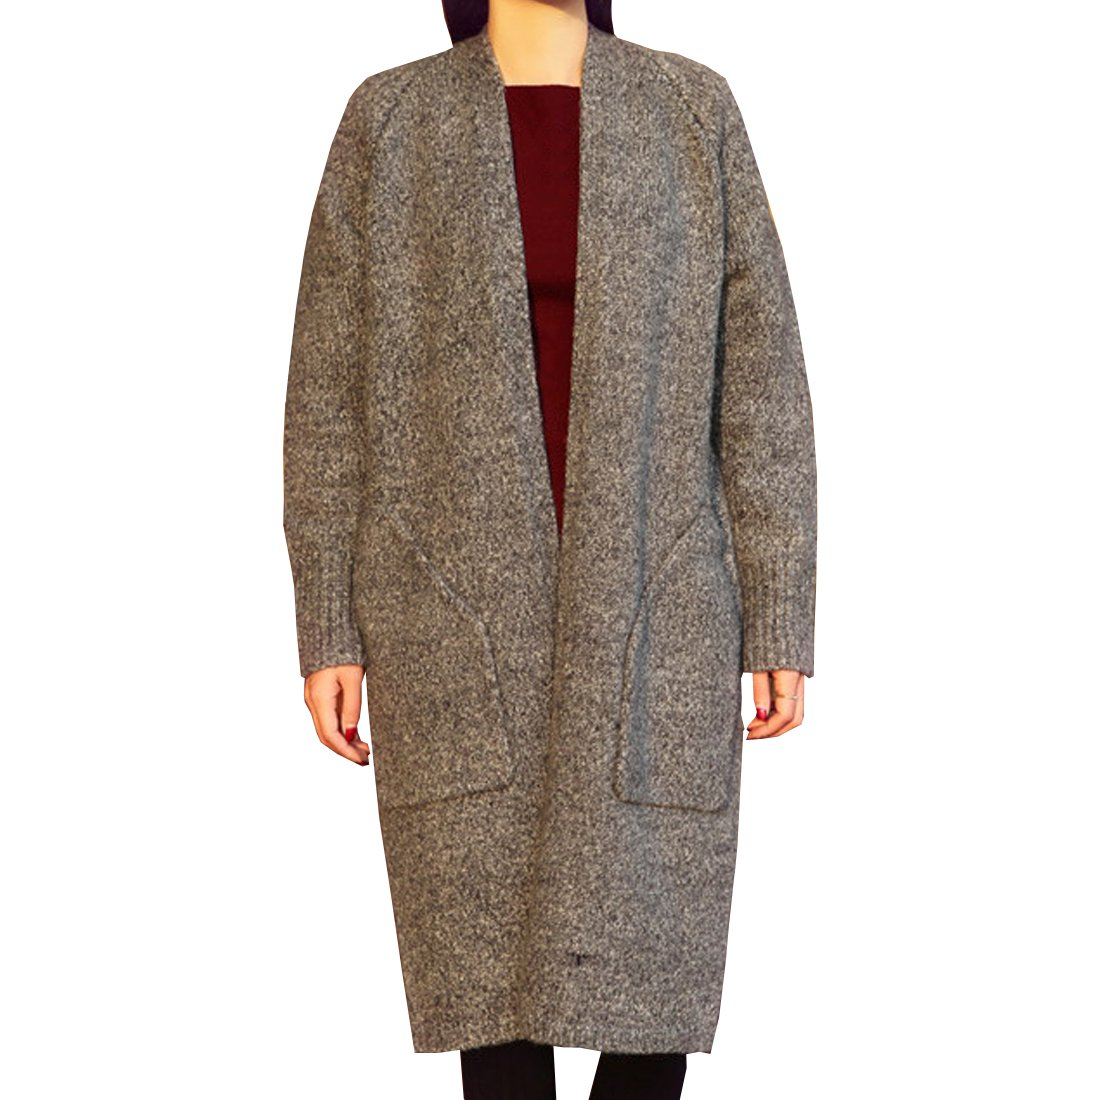 Partiss Women's Loose Sweater Coat with Pockets One Size Camel 20161006HTT02_1